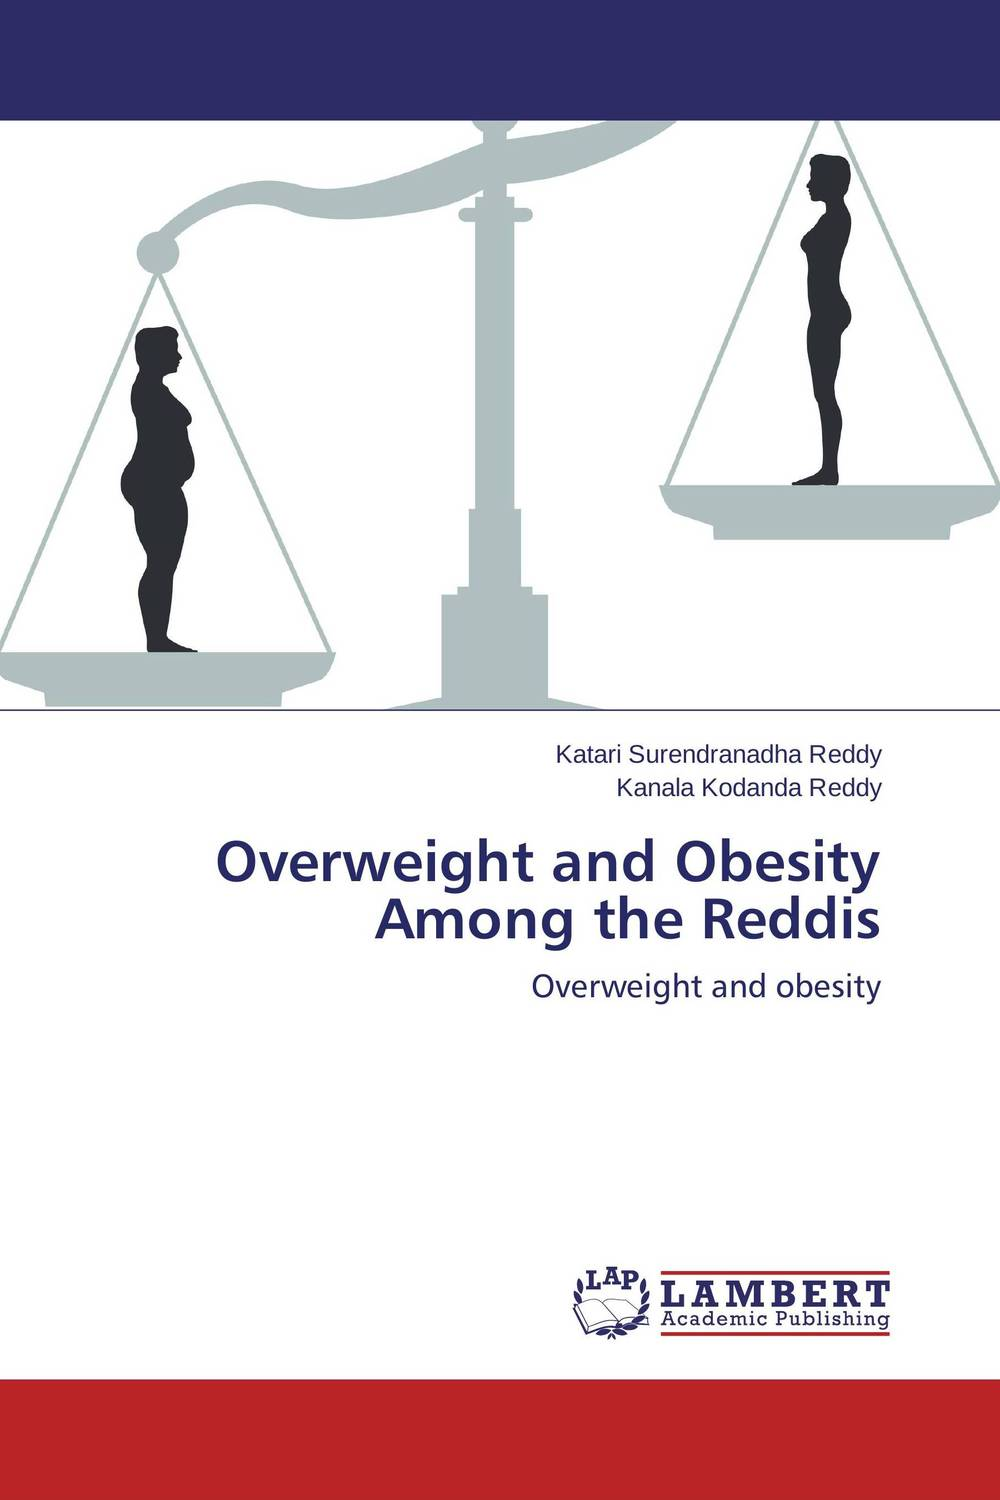 Overweight and Obesity Among the Reddis effective interventions for managing overweight and obesity in adults